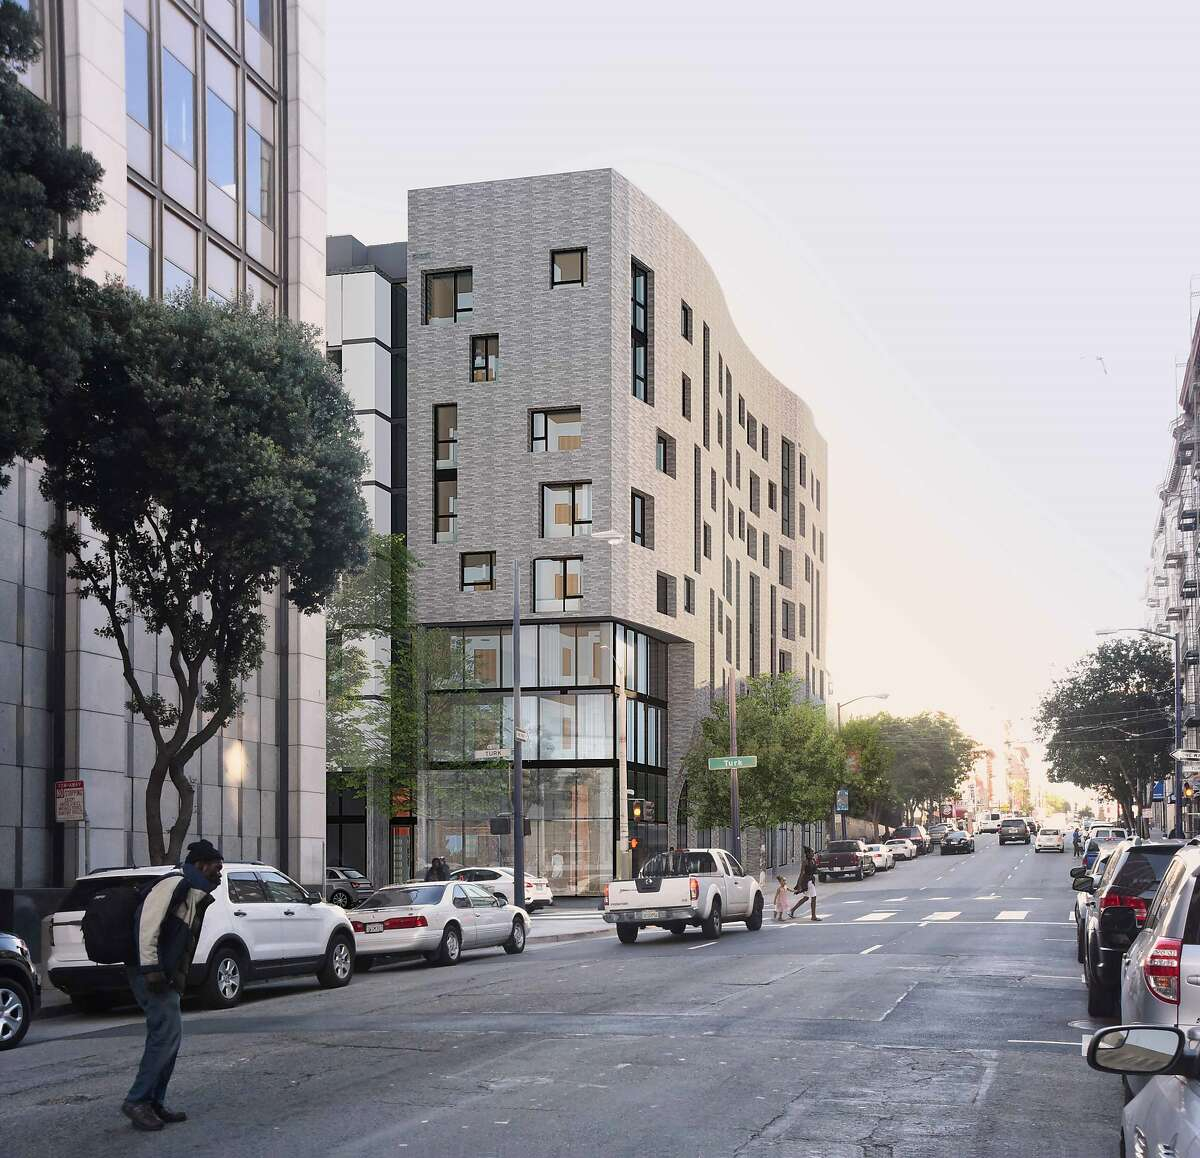 An artist's rendering depicts a view of the affordable housing development to be constructed at 500 Turk Street in San Francisco.